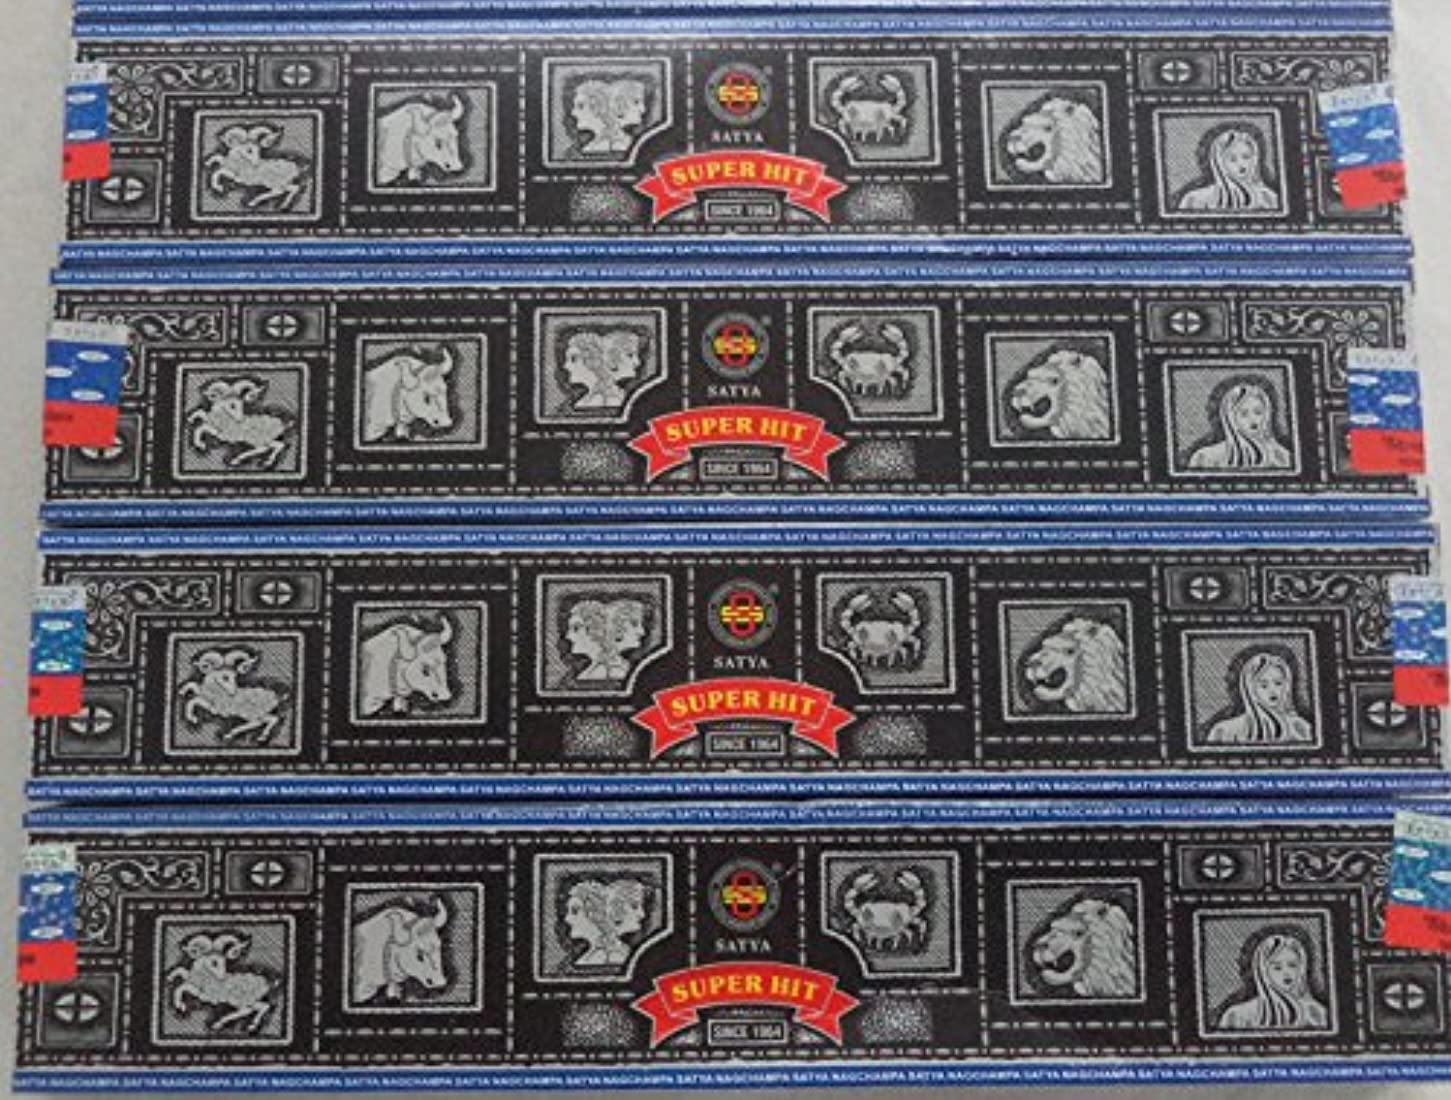 4 Boxes of Super Hit Nag Champa Incense Sticks